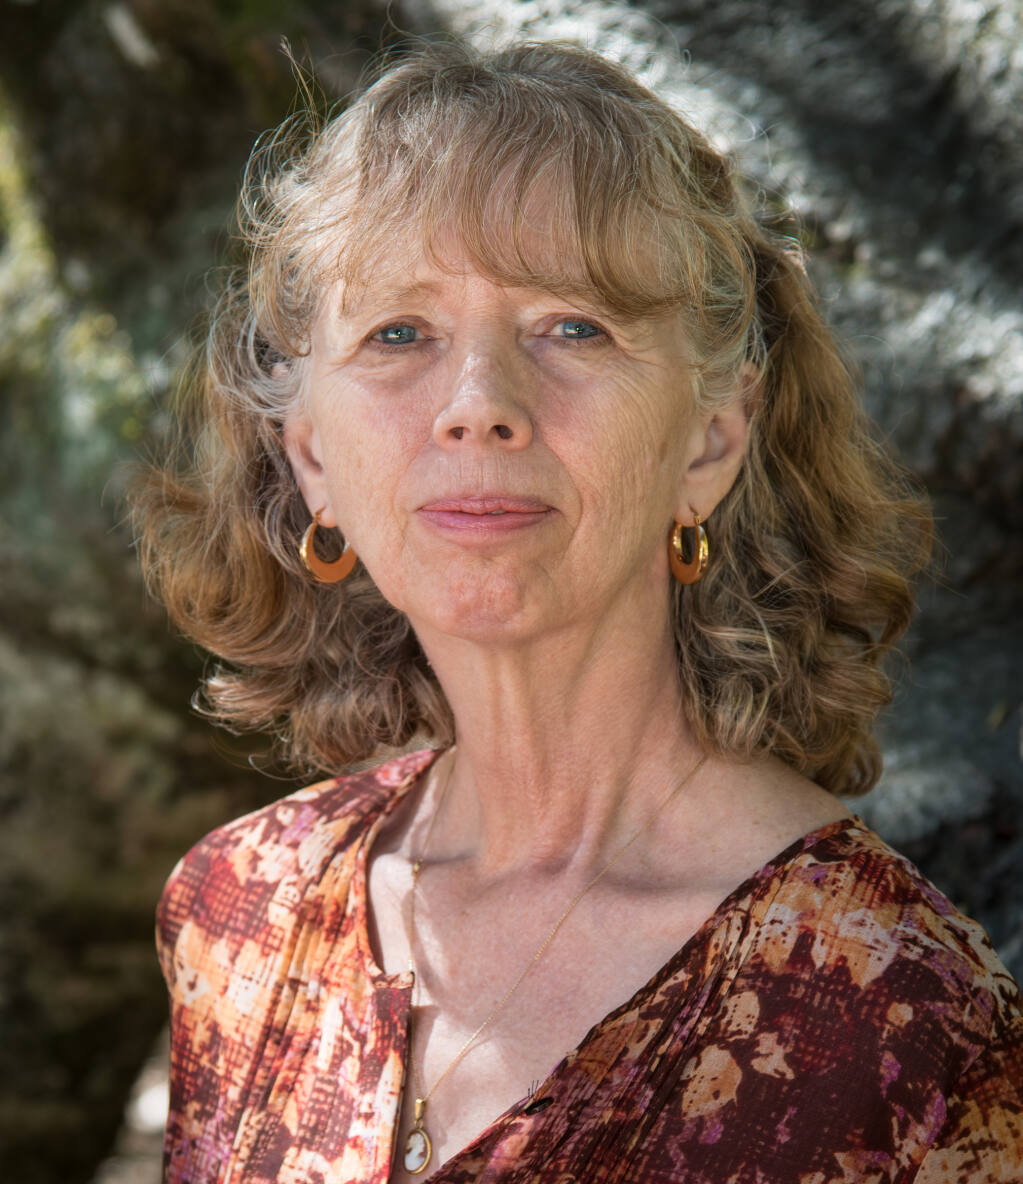 Phyllis Meshulam has been named the new Sonoma County Poet Laureate for 2020-2022. JERRY MESHULAM